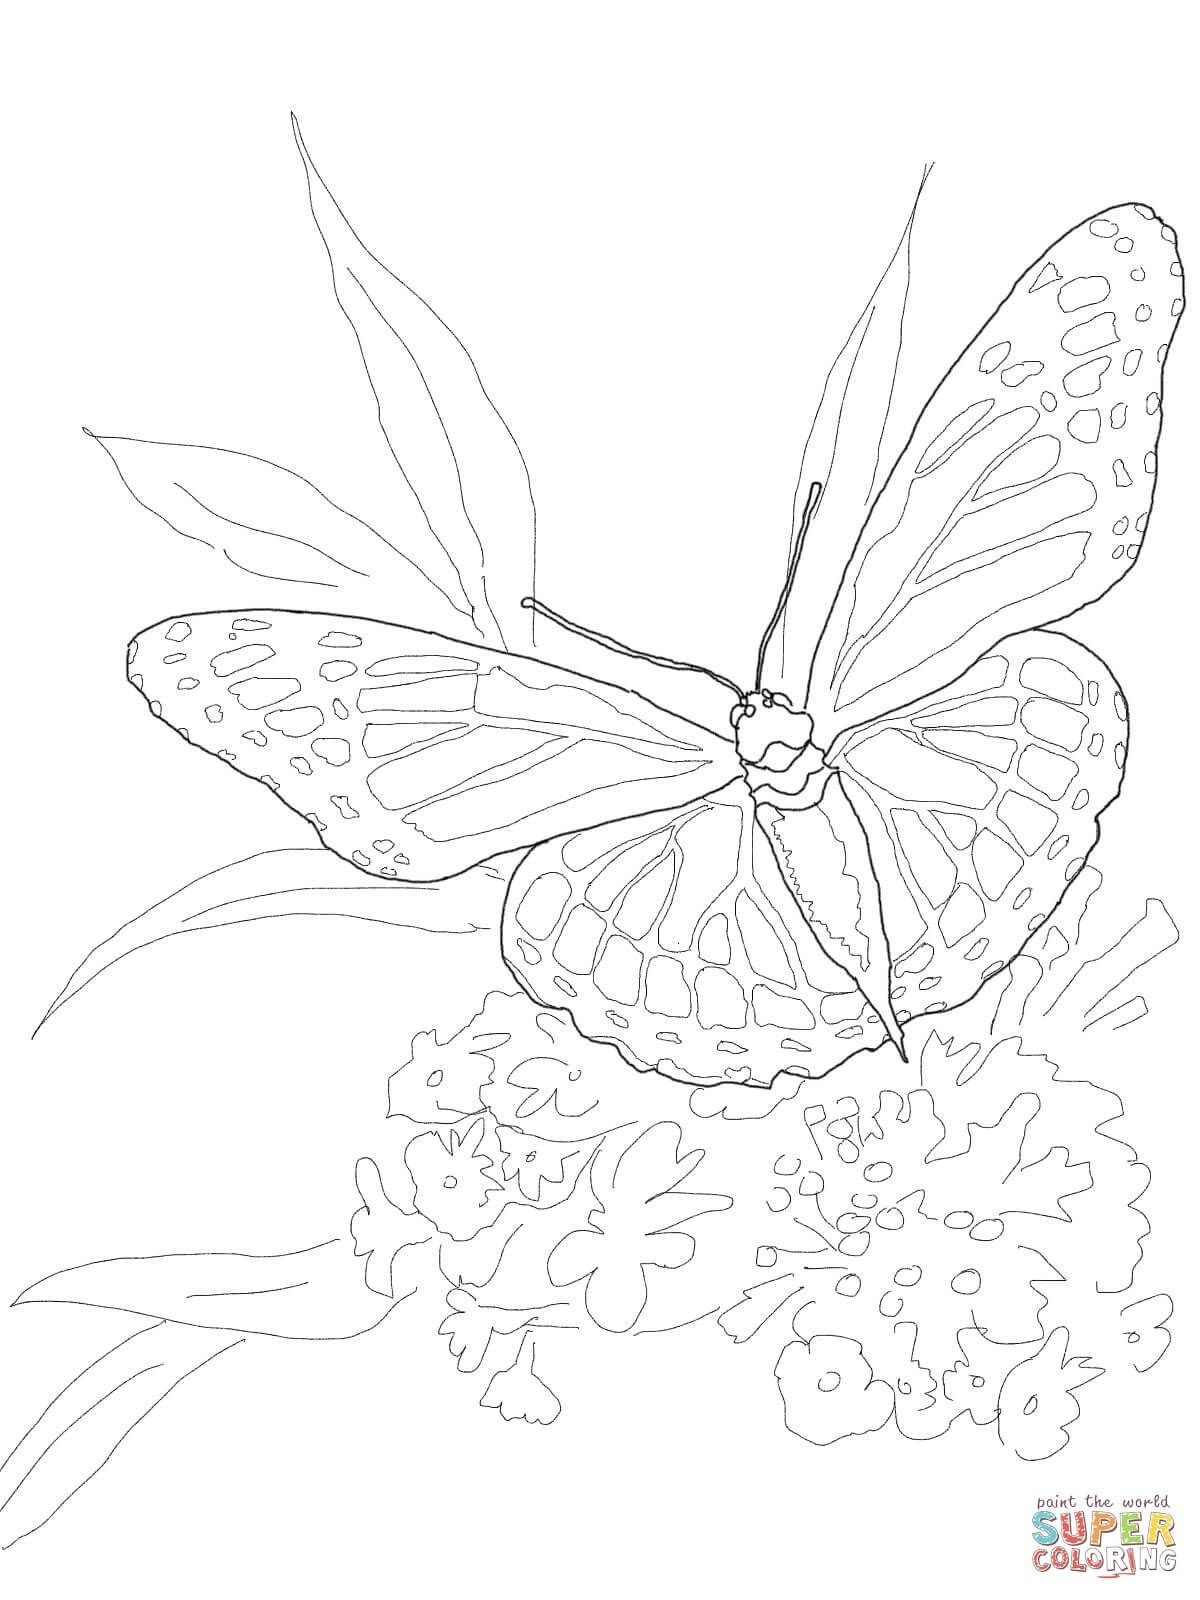 Brilliant Image Of Monarch Butterfly Coloring Page Davemelillo Com Butterfly Coloring Page Coloring Pages Cartoon Butterfly [ 1600 x 1200 Pixel ]